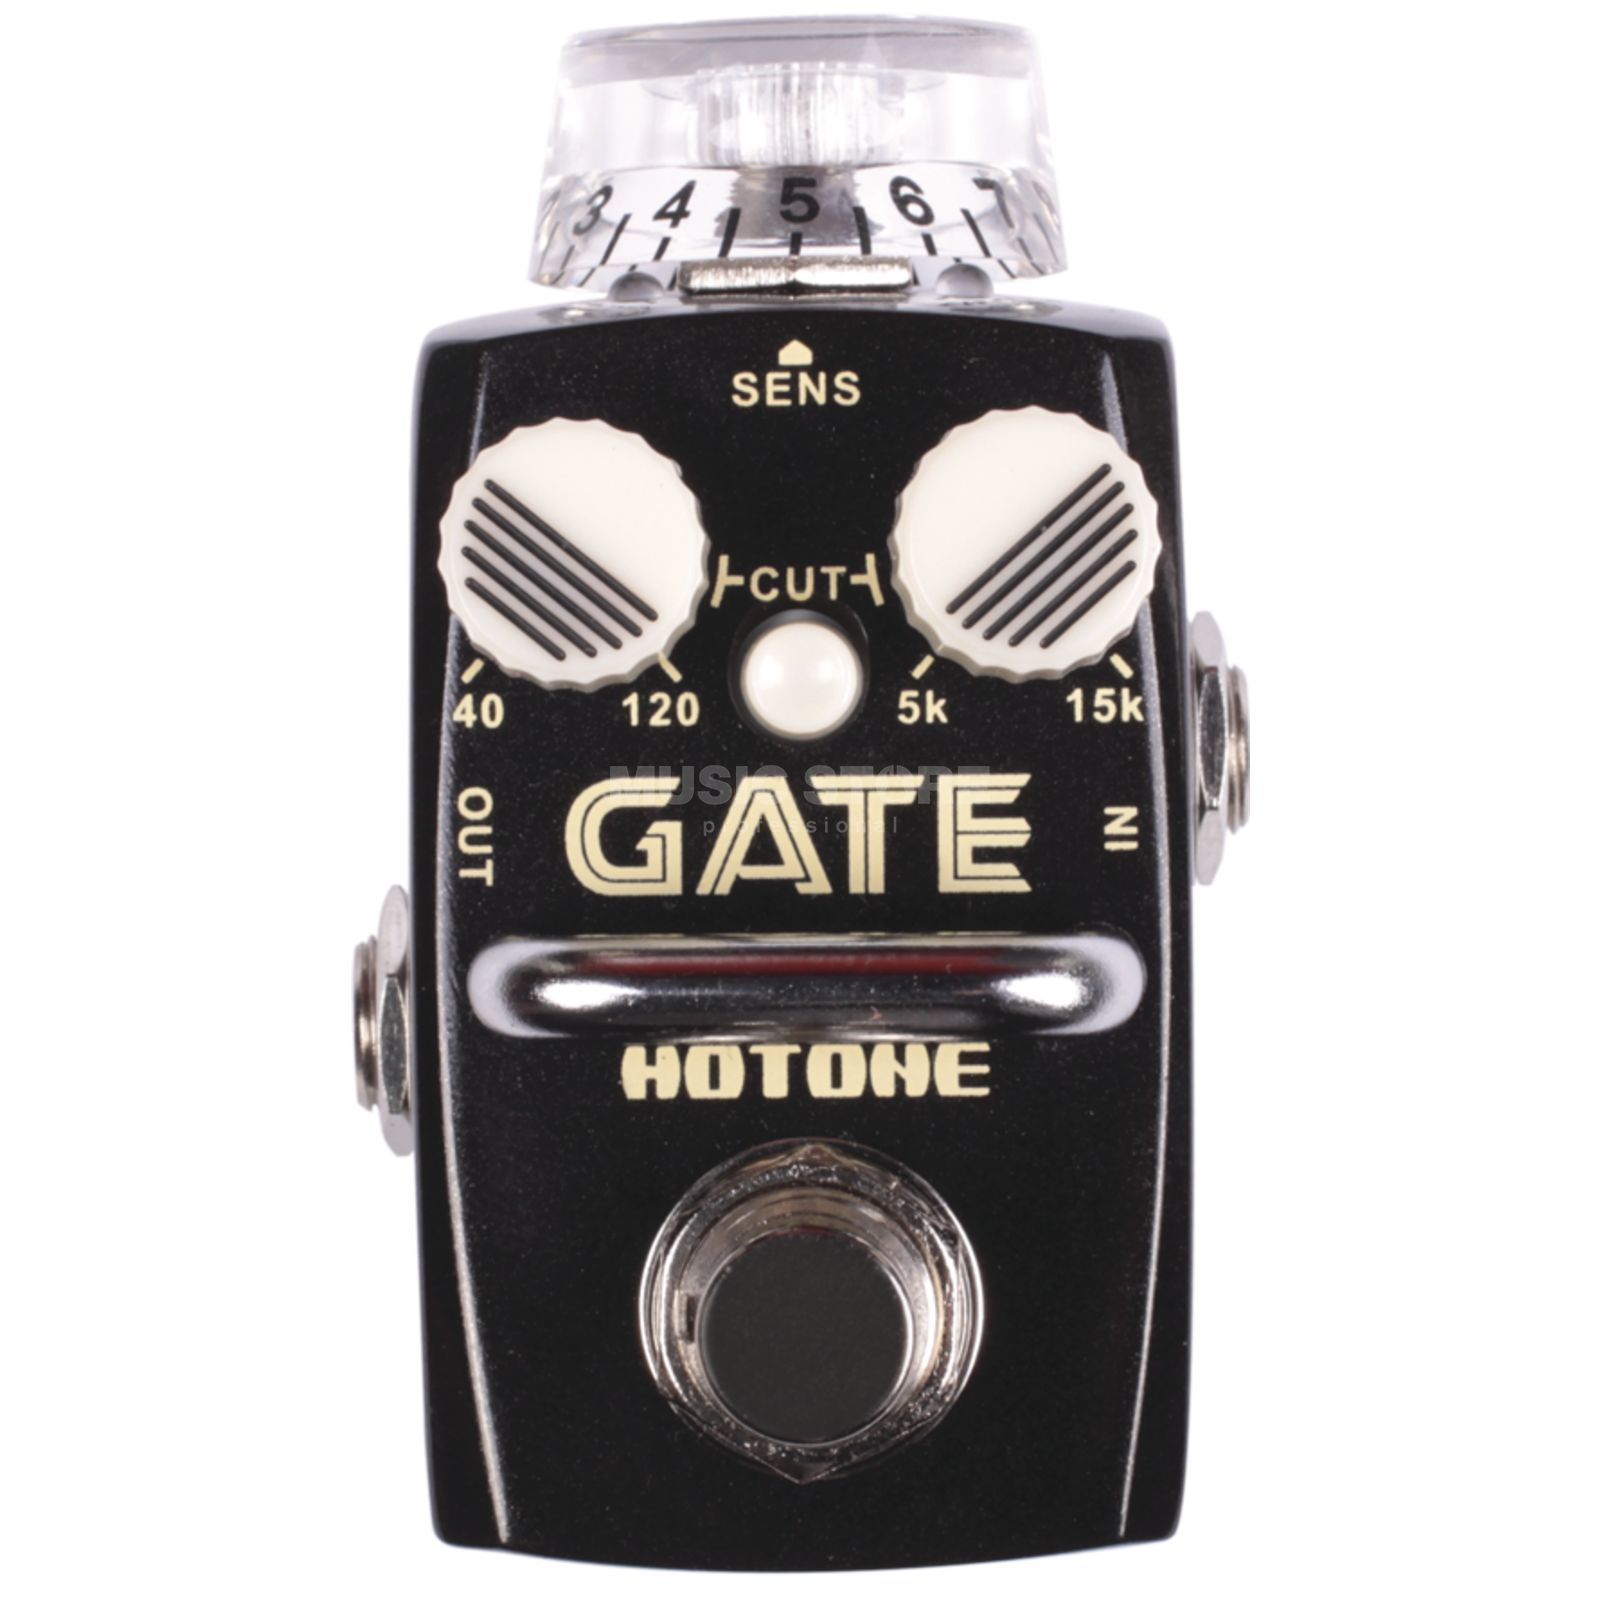 Hotone Gate Noise Reduction Produktbild